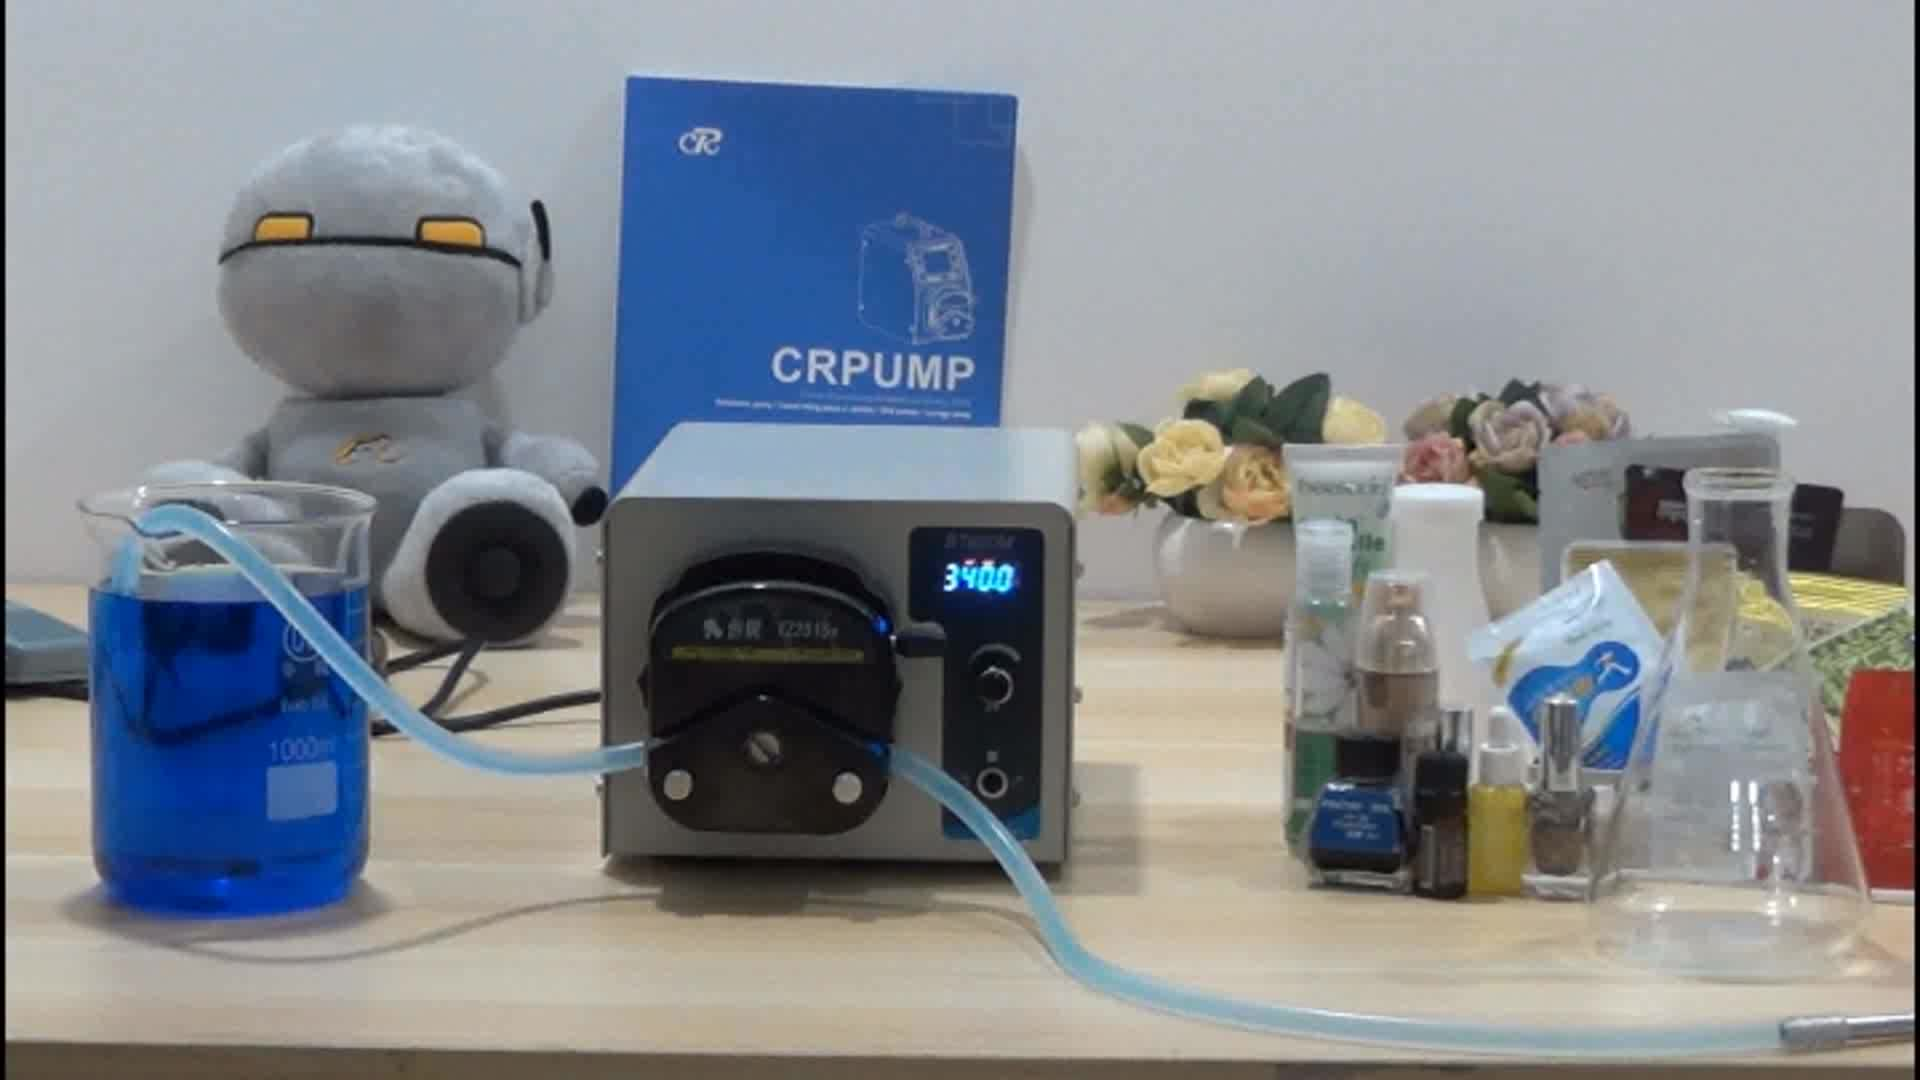 Foot pedal control Saline transfer Liposuction Infiltration Tumescent anesthesia Dosing Peristaltic infusion Pump